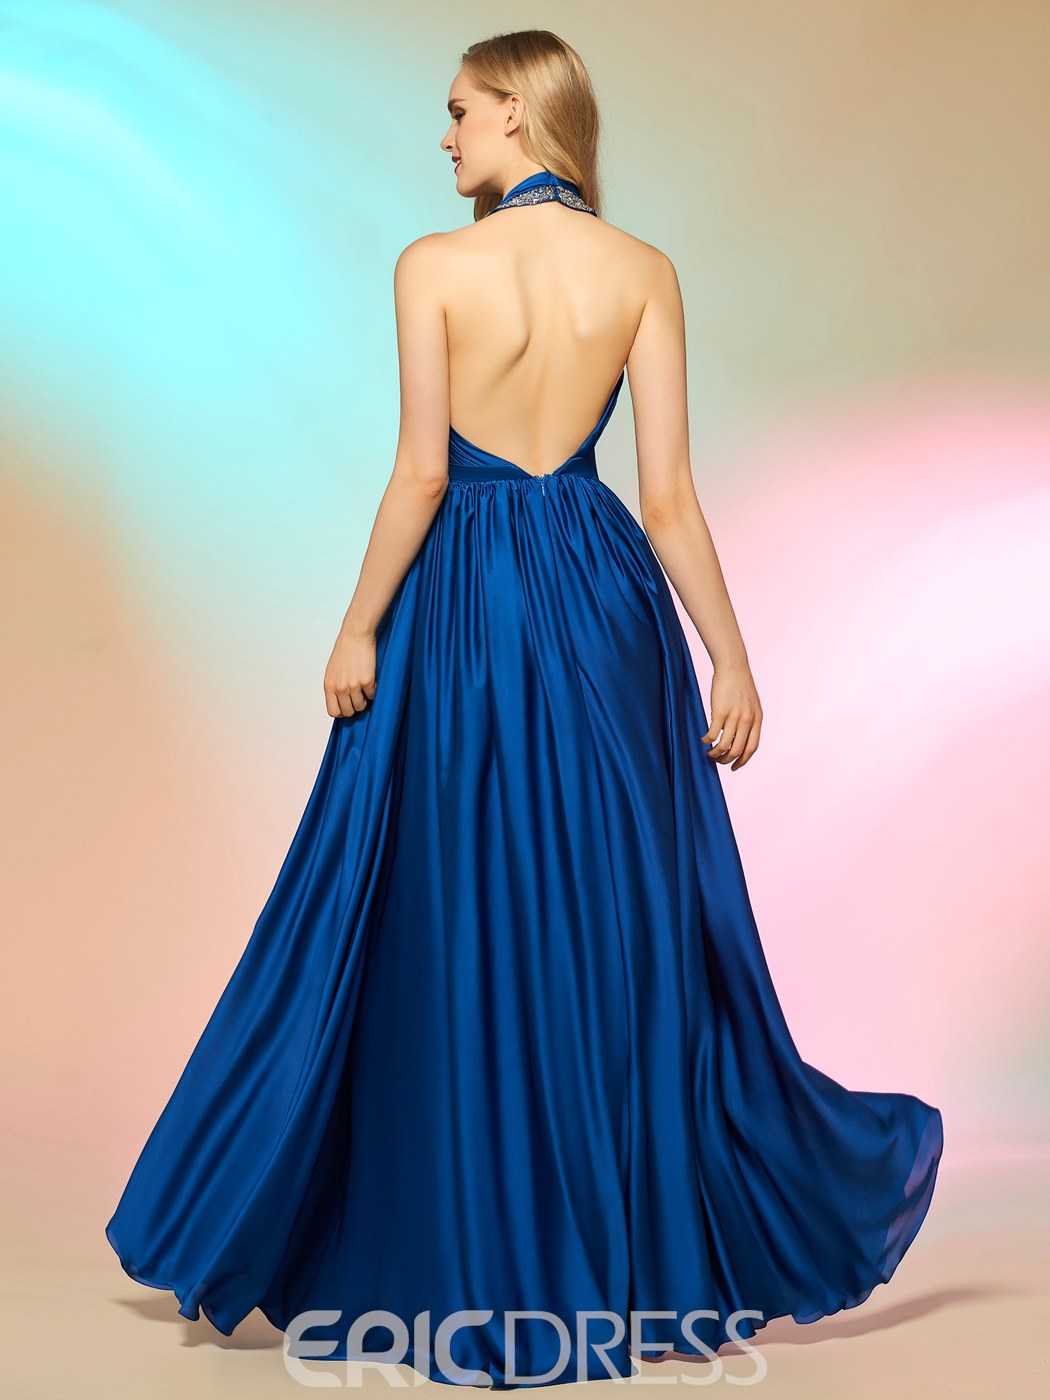 Ericdress Graceful Halter Beaded Backless A Line Long Prom Dress